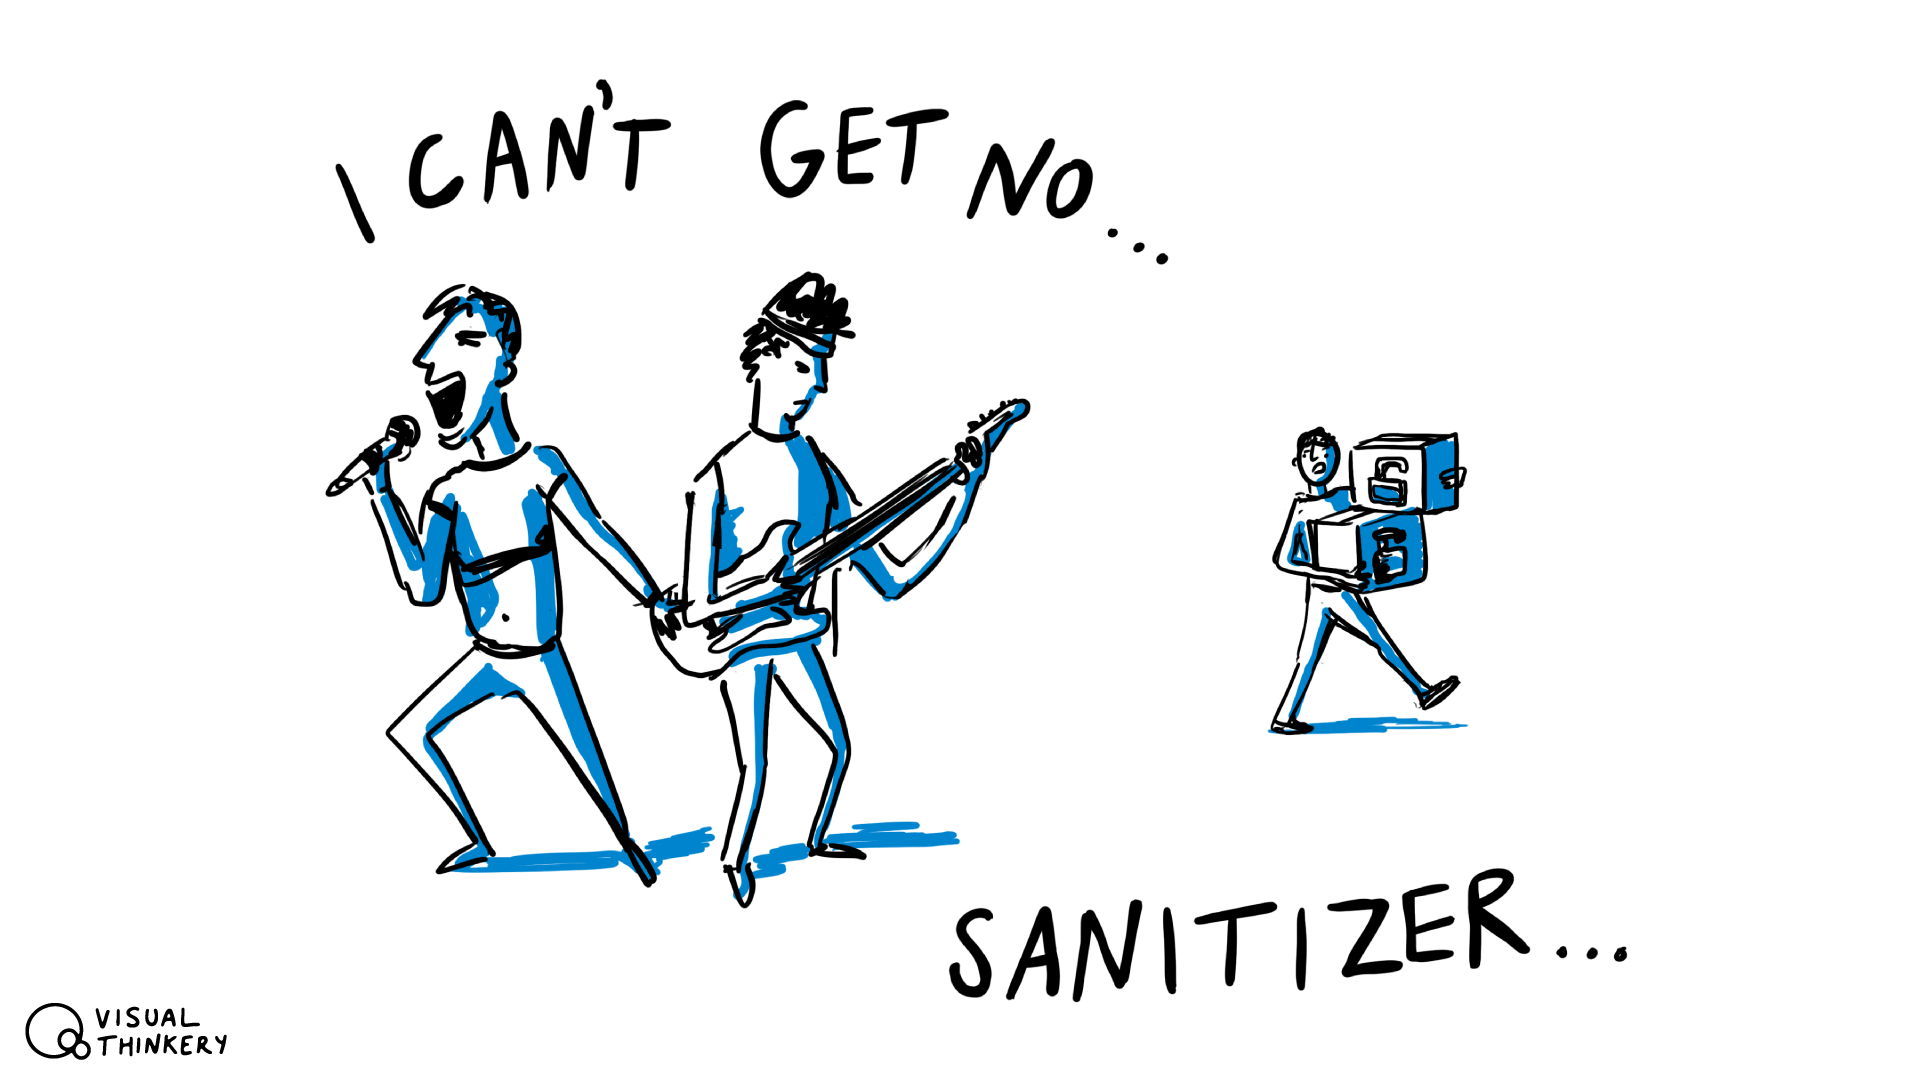 I can't get no - sanitizer